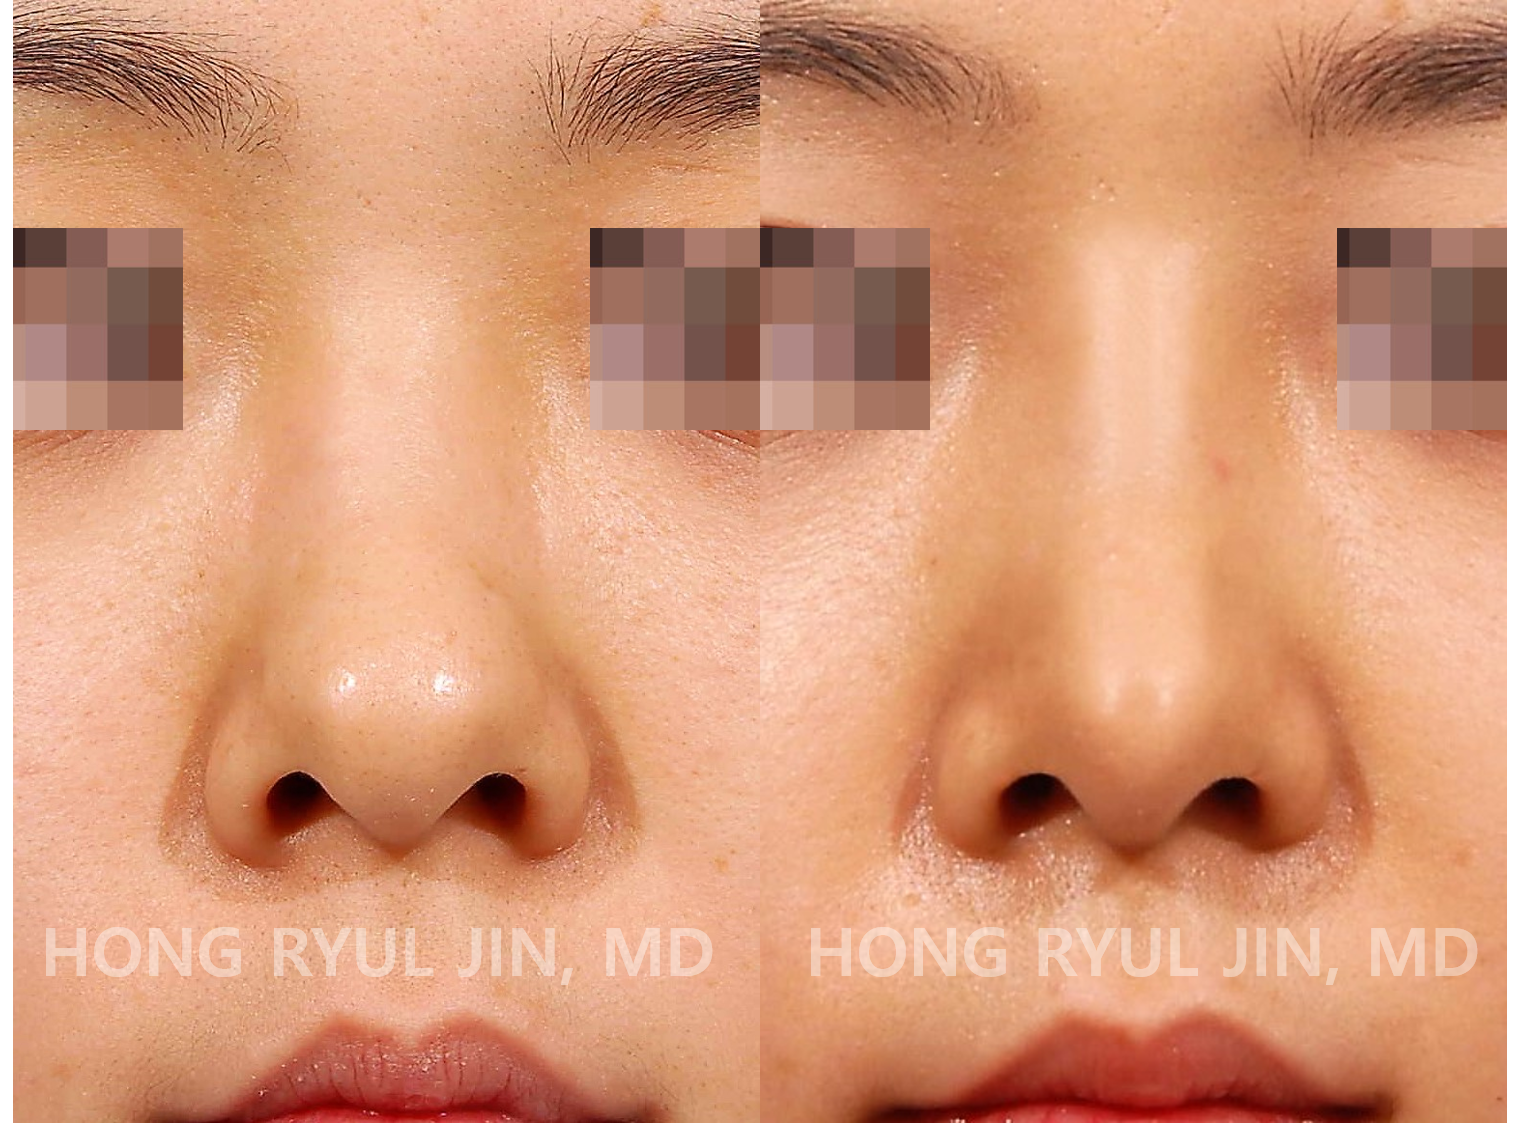 Bulbous nose rhinoplasty